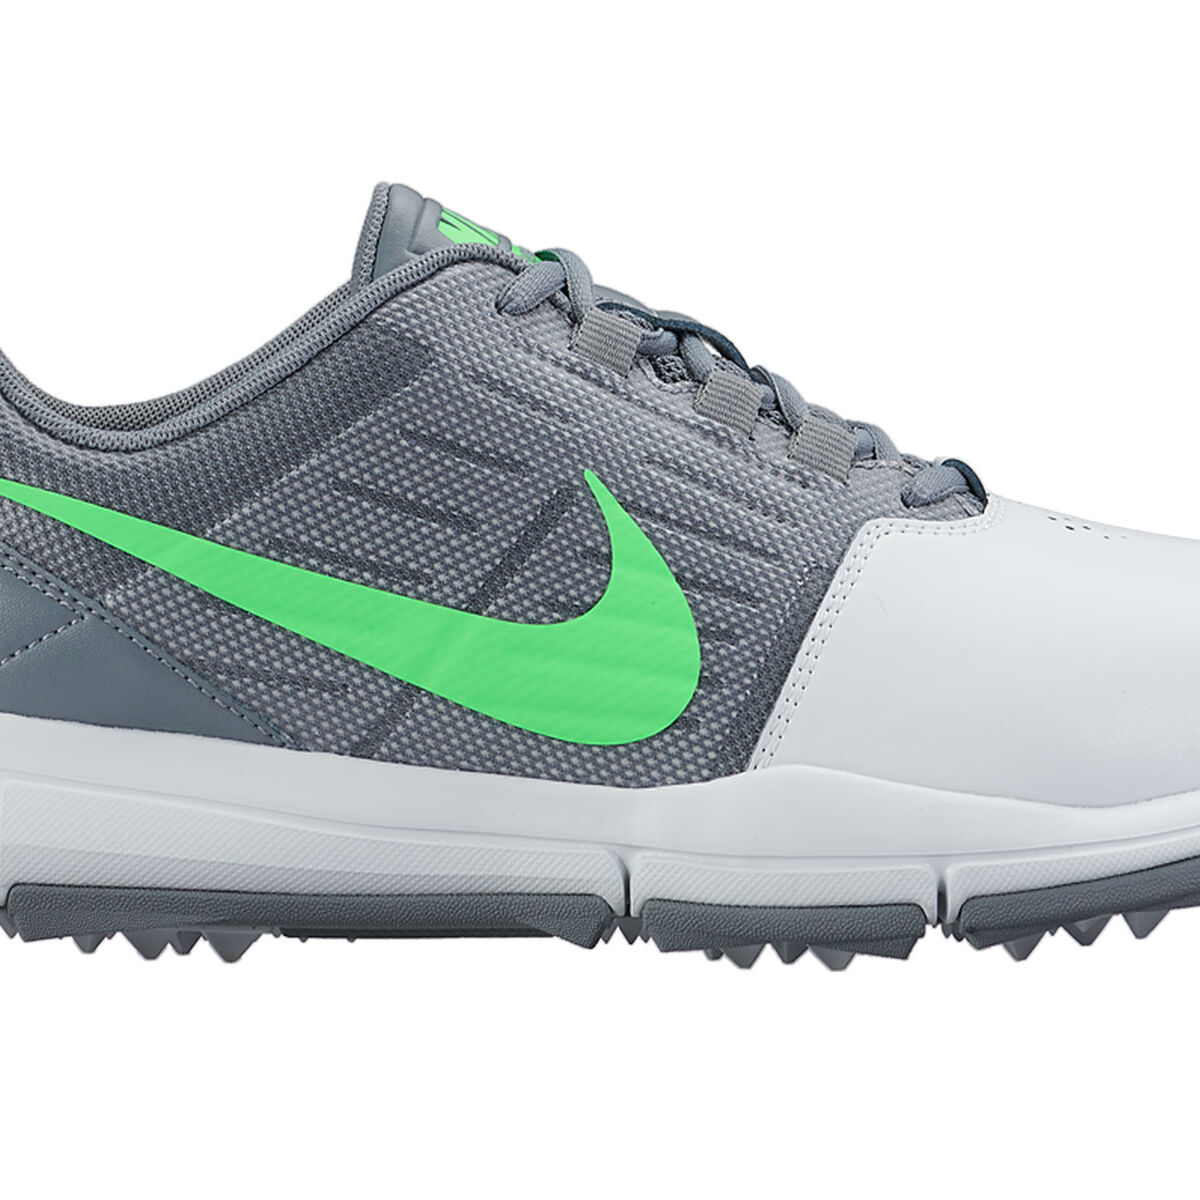 Nike Golf Explorer Shoes from american golf